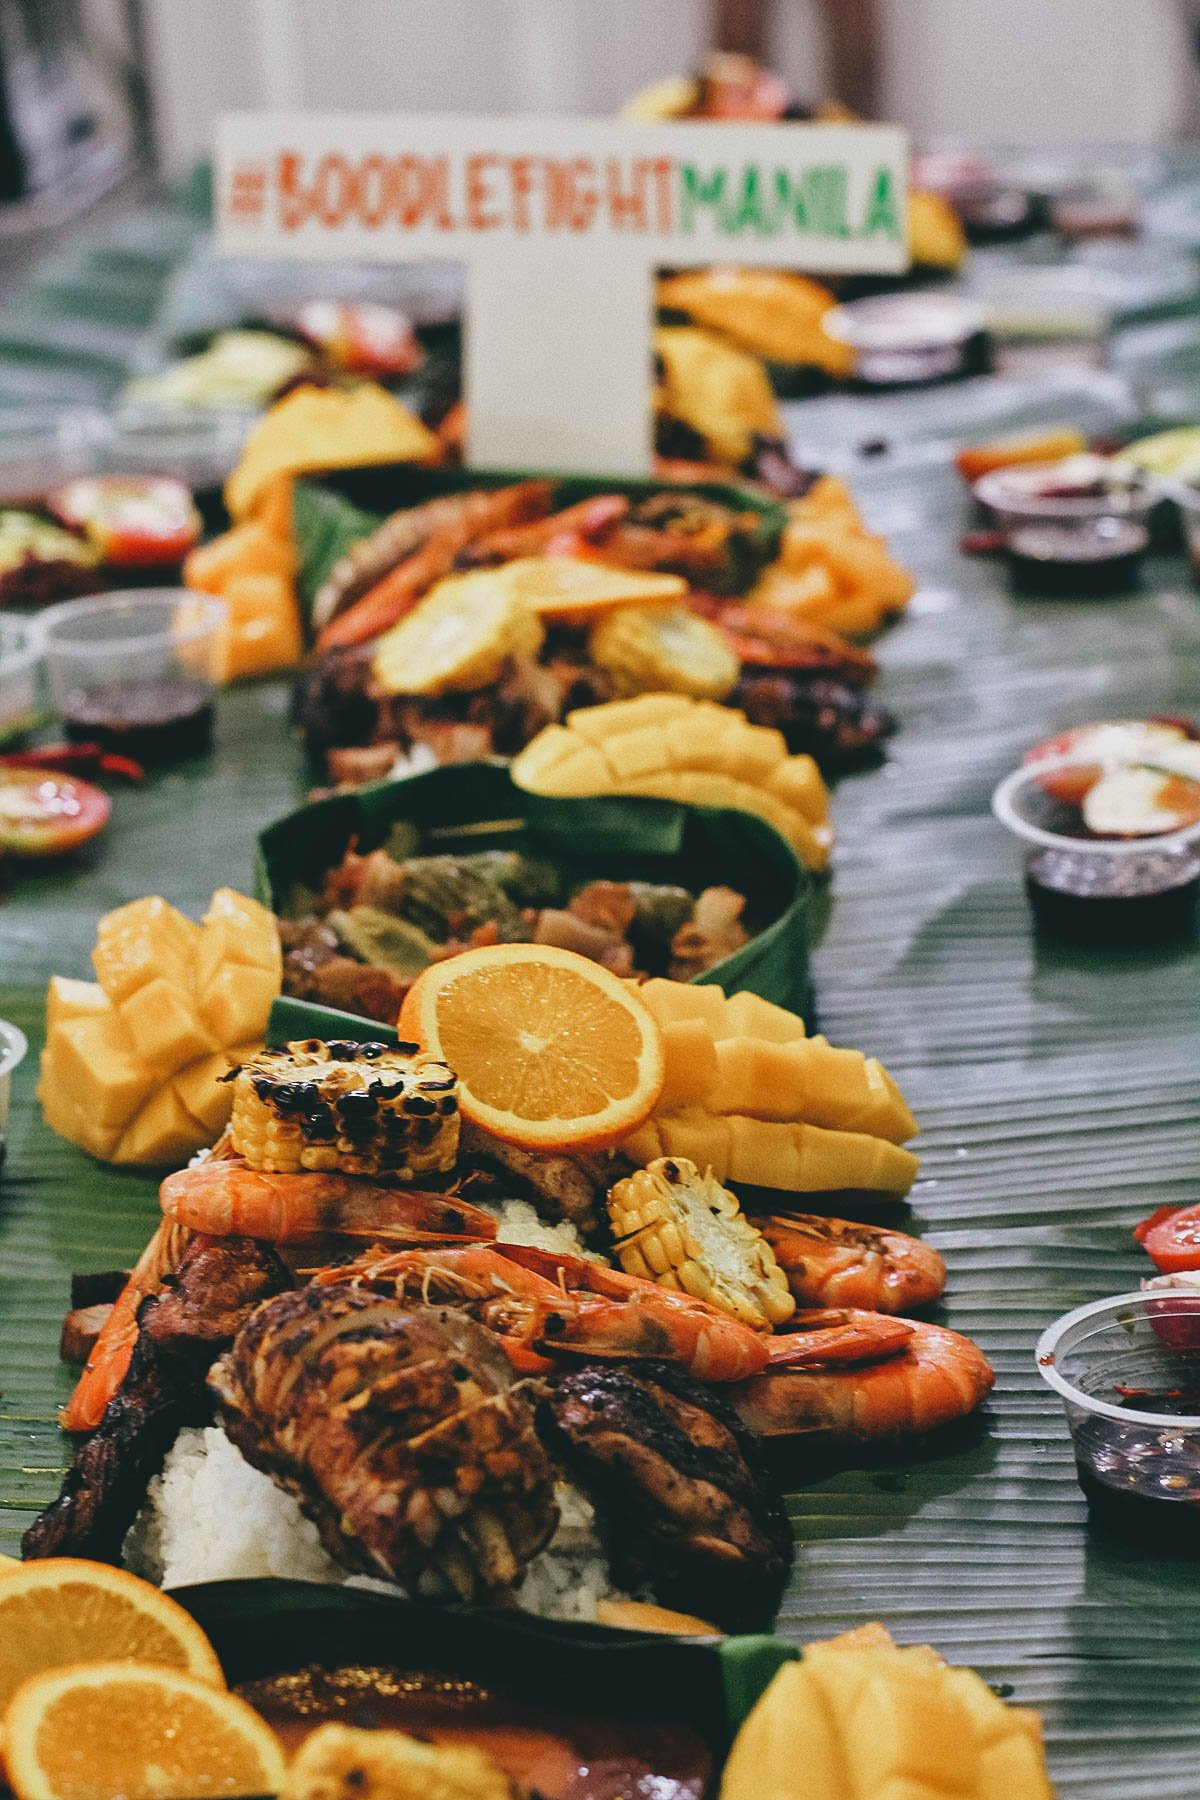 Boodle Fight Manila